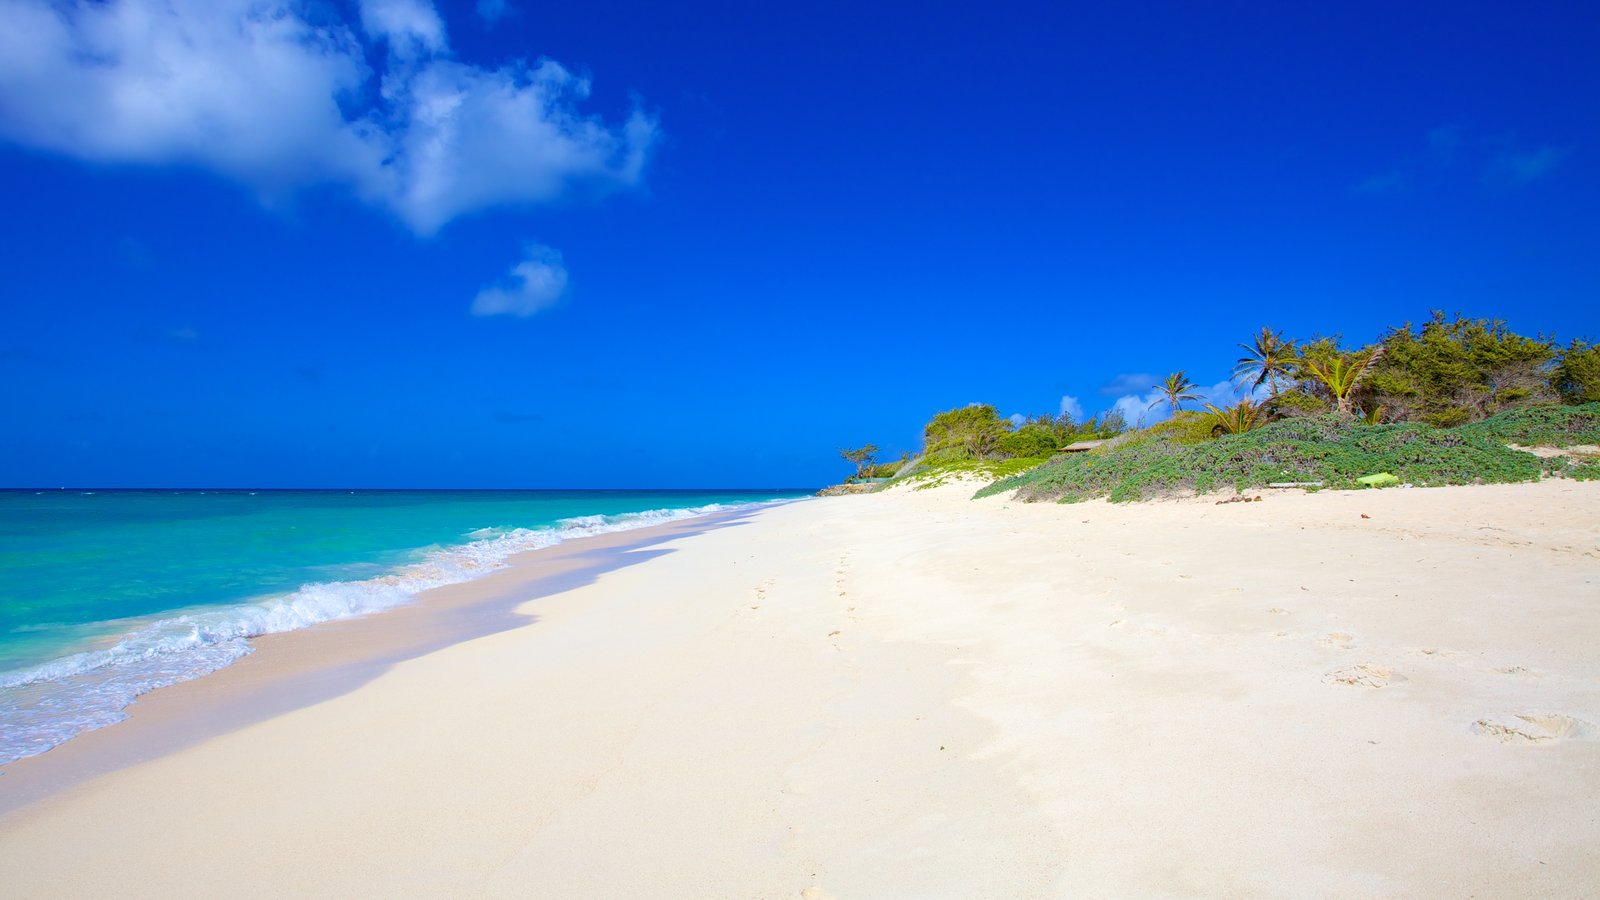 Silver Sands Beach Which Includes Tropical Scenes Landscape Views And A Sandy